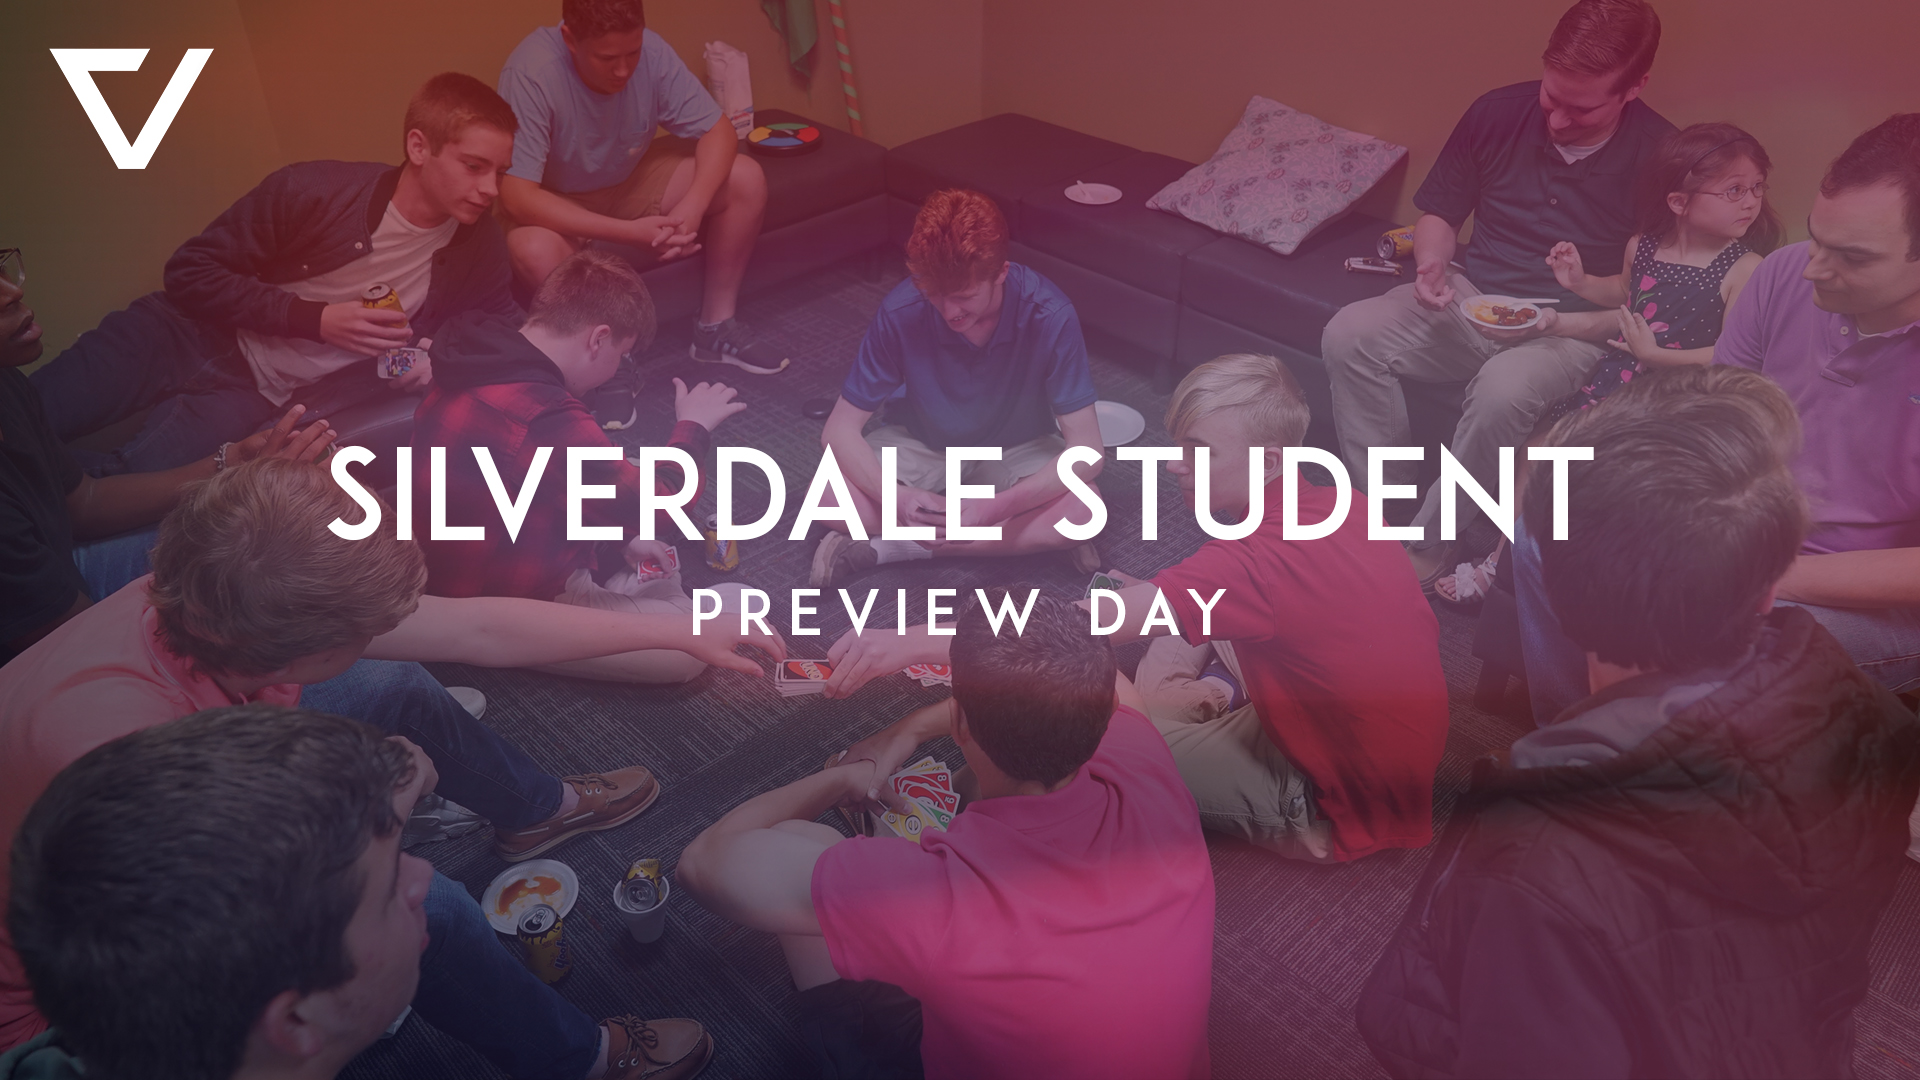 20190522_Silverdale Student Preview Day (002).jpg